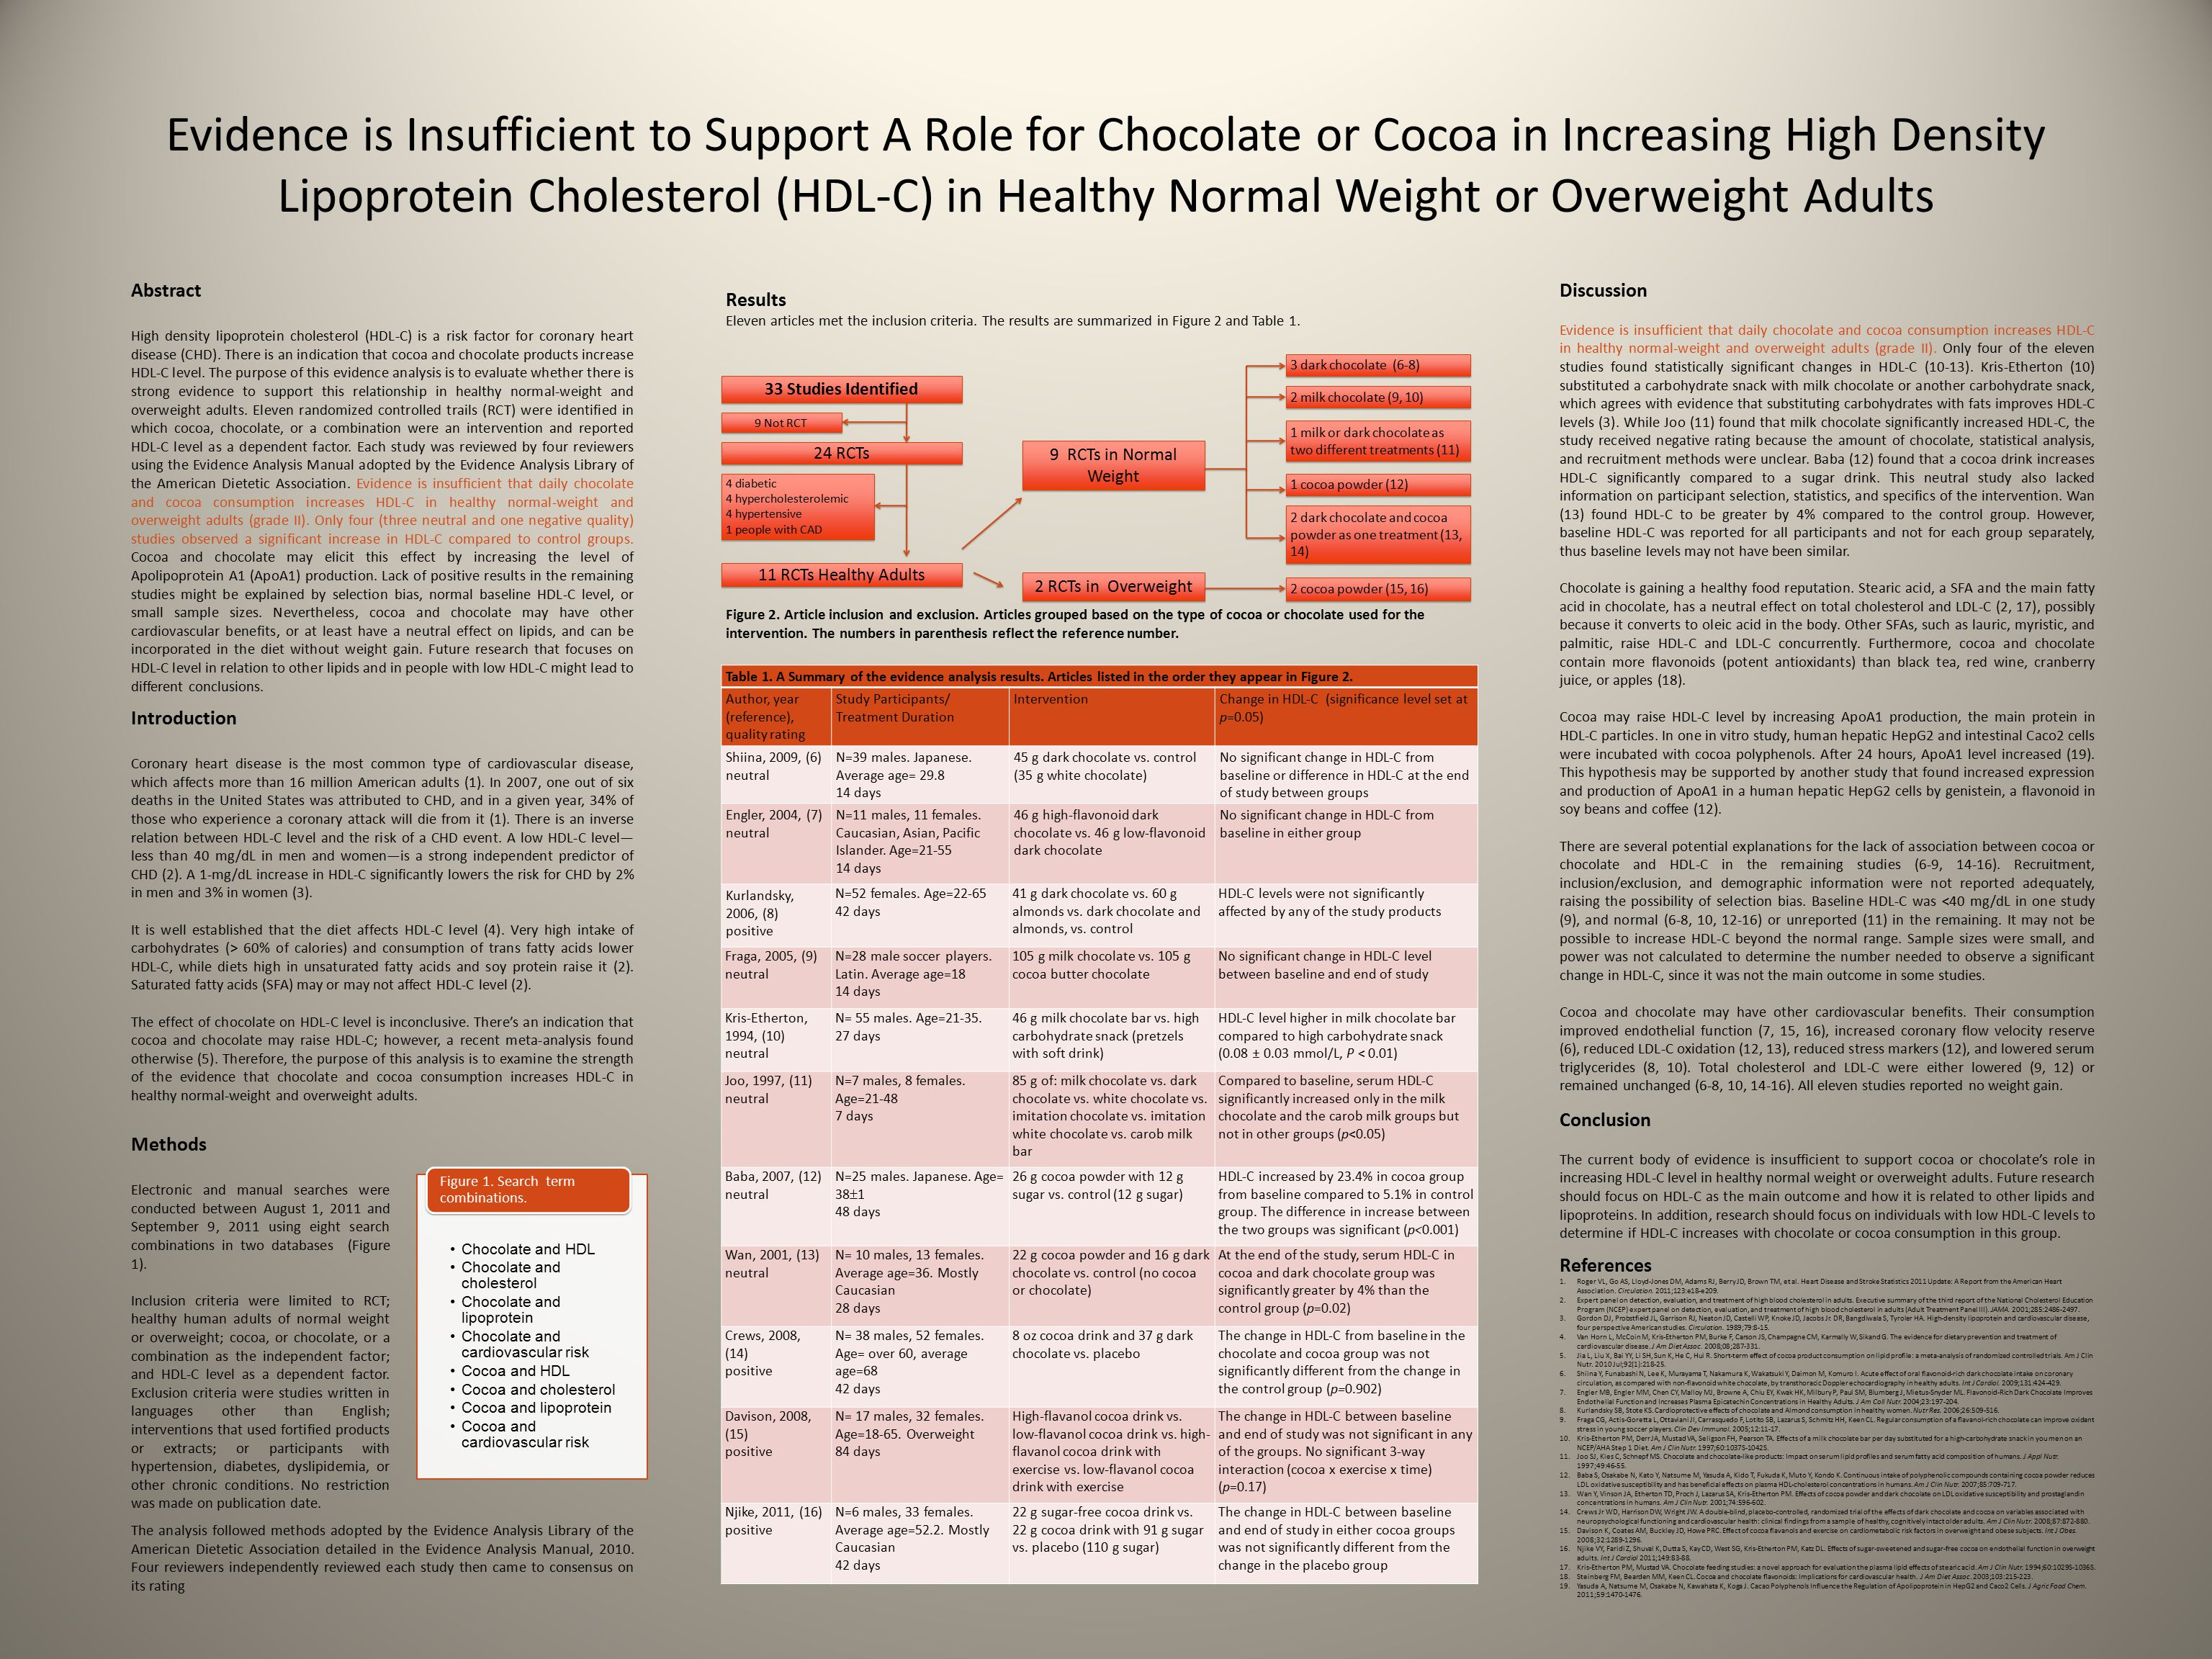 Evidence is Insufficient to Support A Role for Chocolate or Cocoa in Increasing High Density Lipoprotein Cholesterol (HDL-C) in Healthy Normal Weight or Overweight Adults Abstract High density lipoprotein cholesterol (HDL-C) is a risk factor for coronary heart disease (CHD).